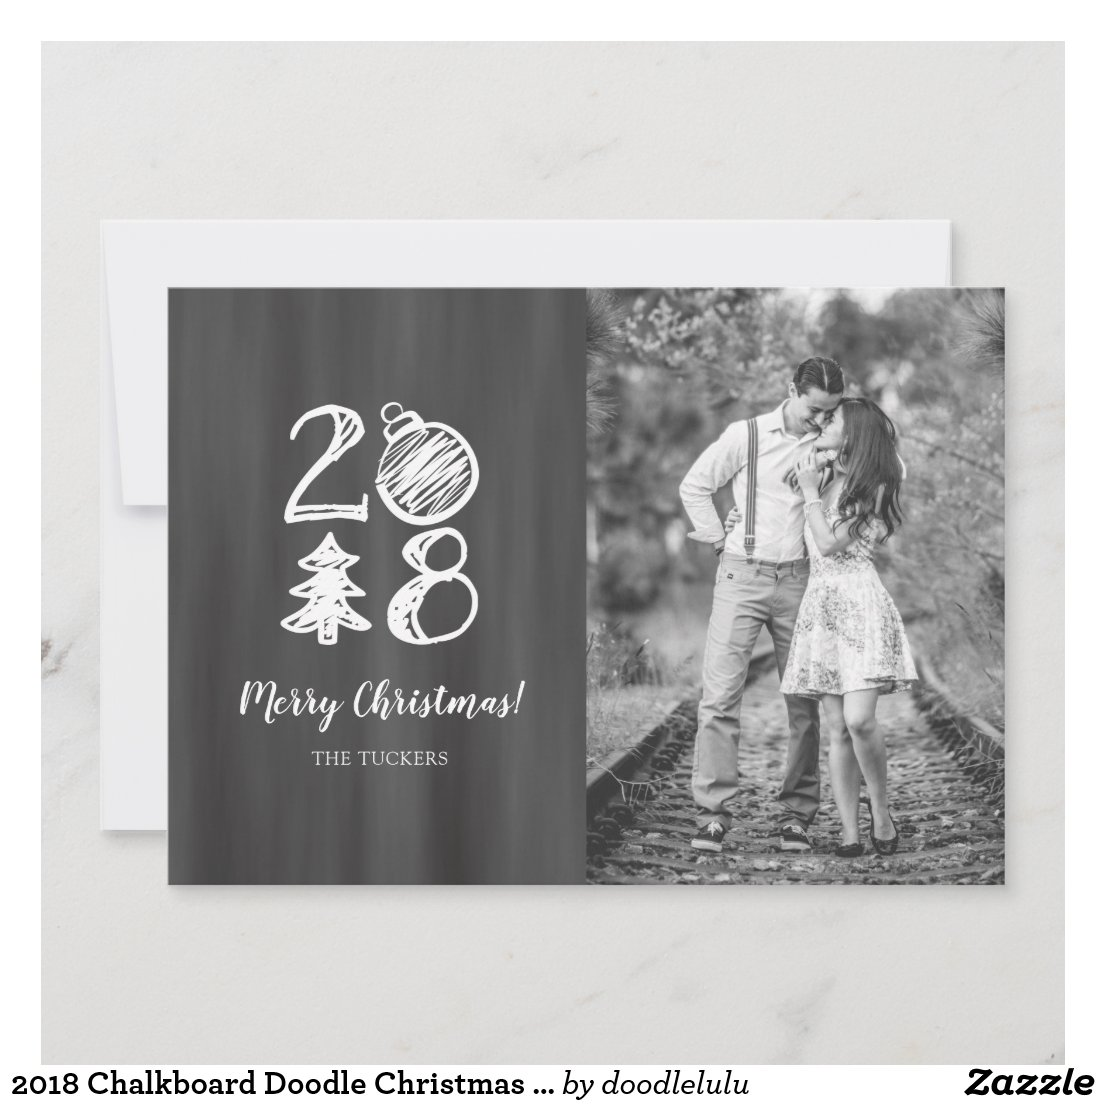 2018 Chalkboard Doodle Christmas Photo Holiday Card